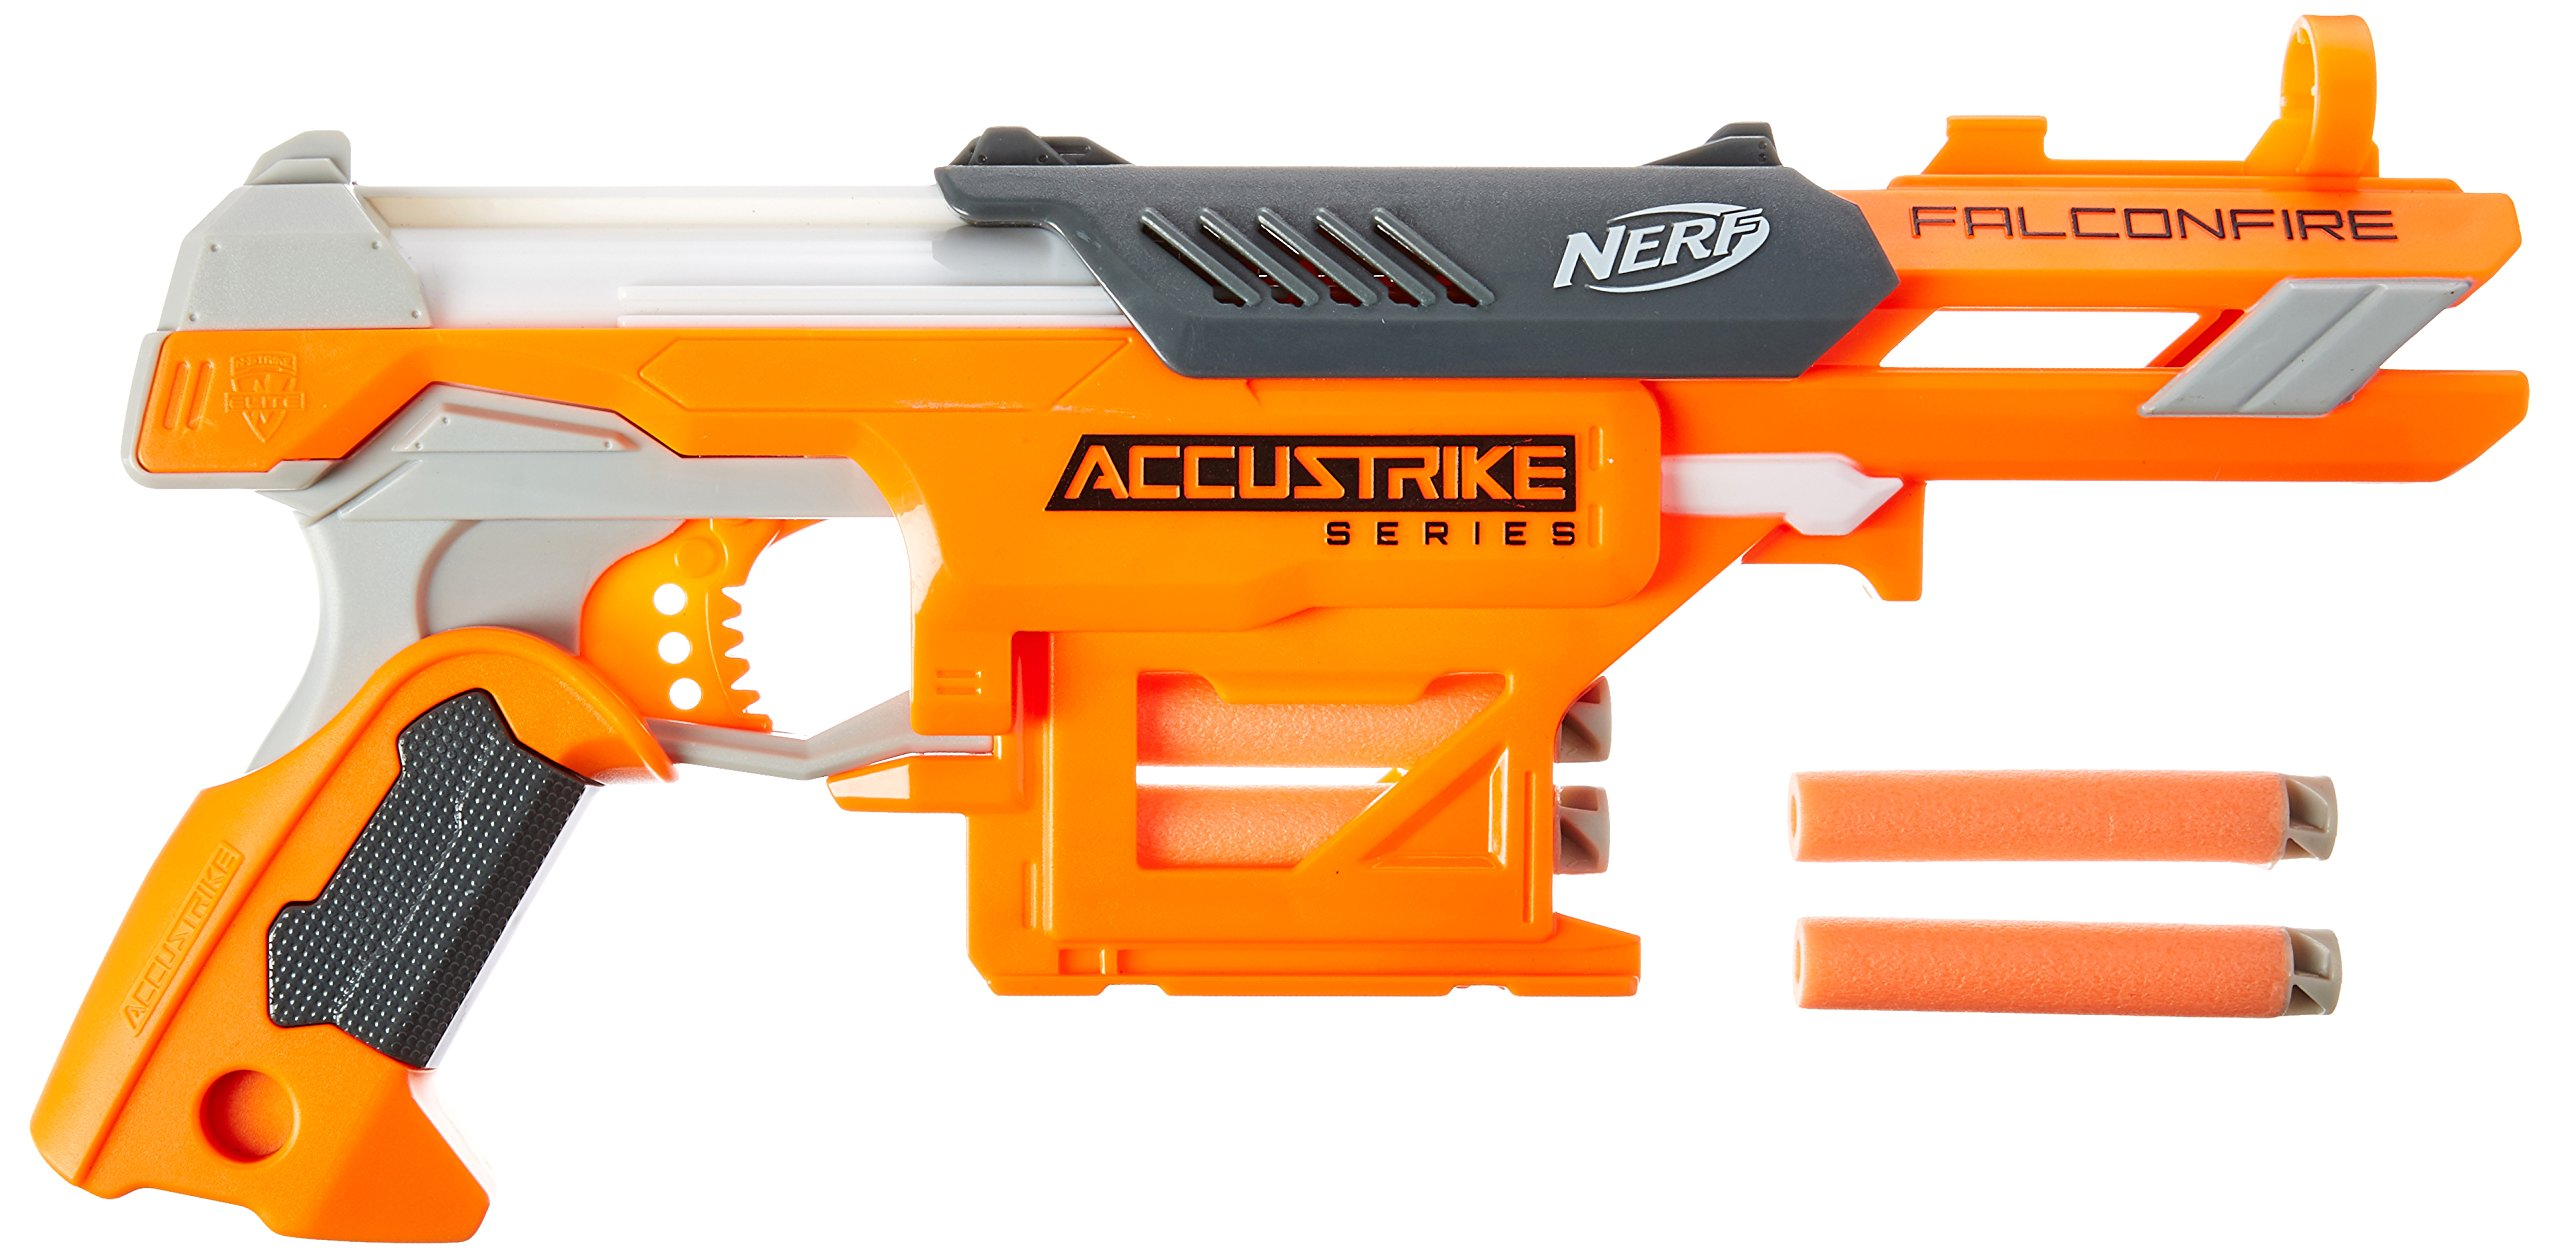 Nerf N-Strike Elite AccuStrike Series FalconFire by Nerf (Image #1)